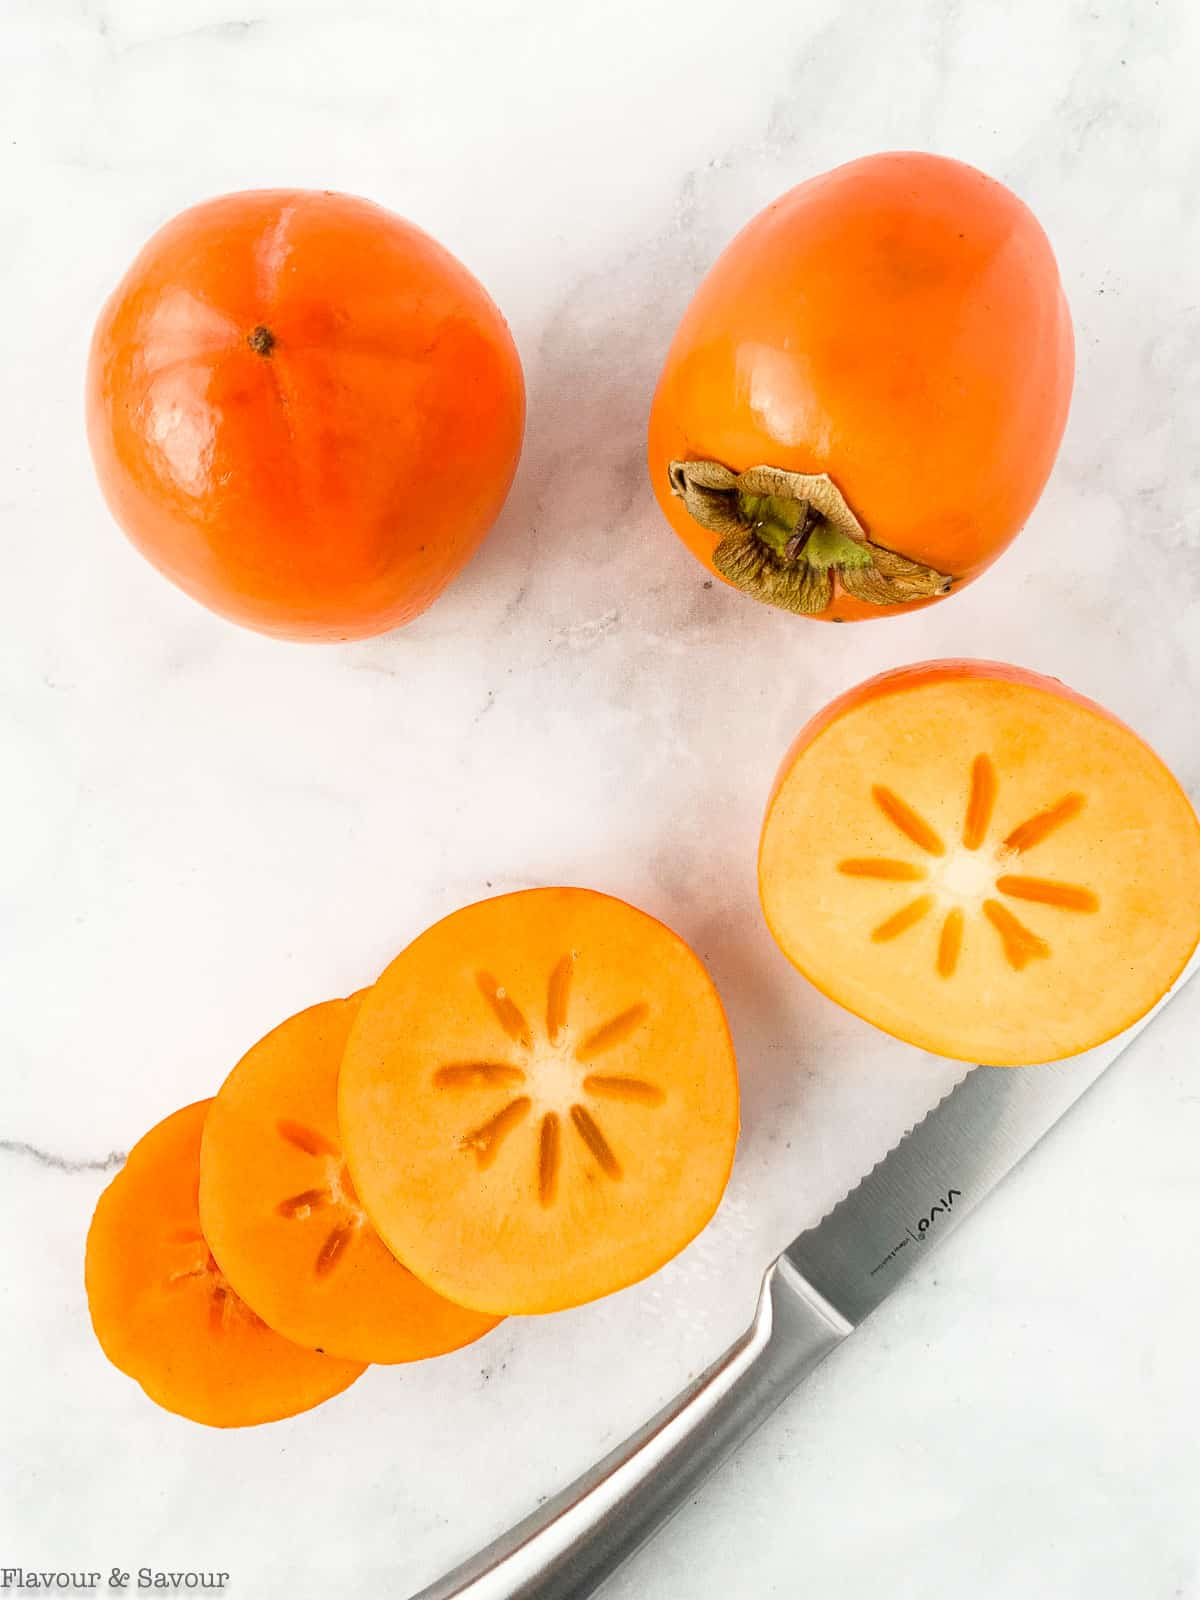 Hachiya persimmons, whole and sliced